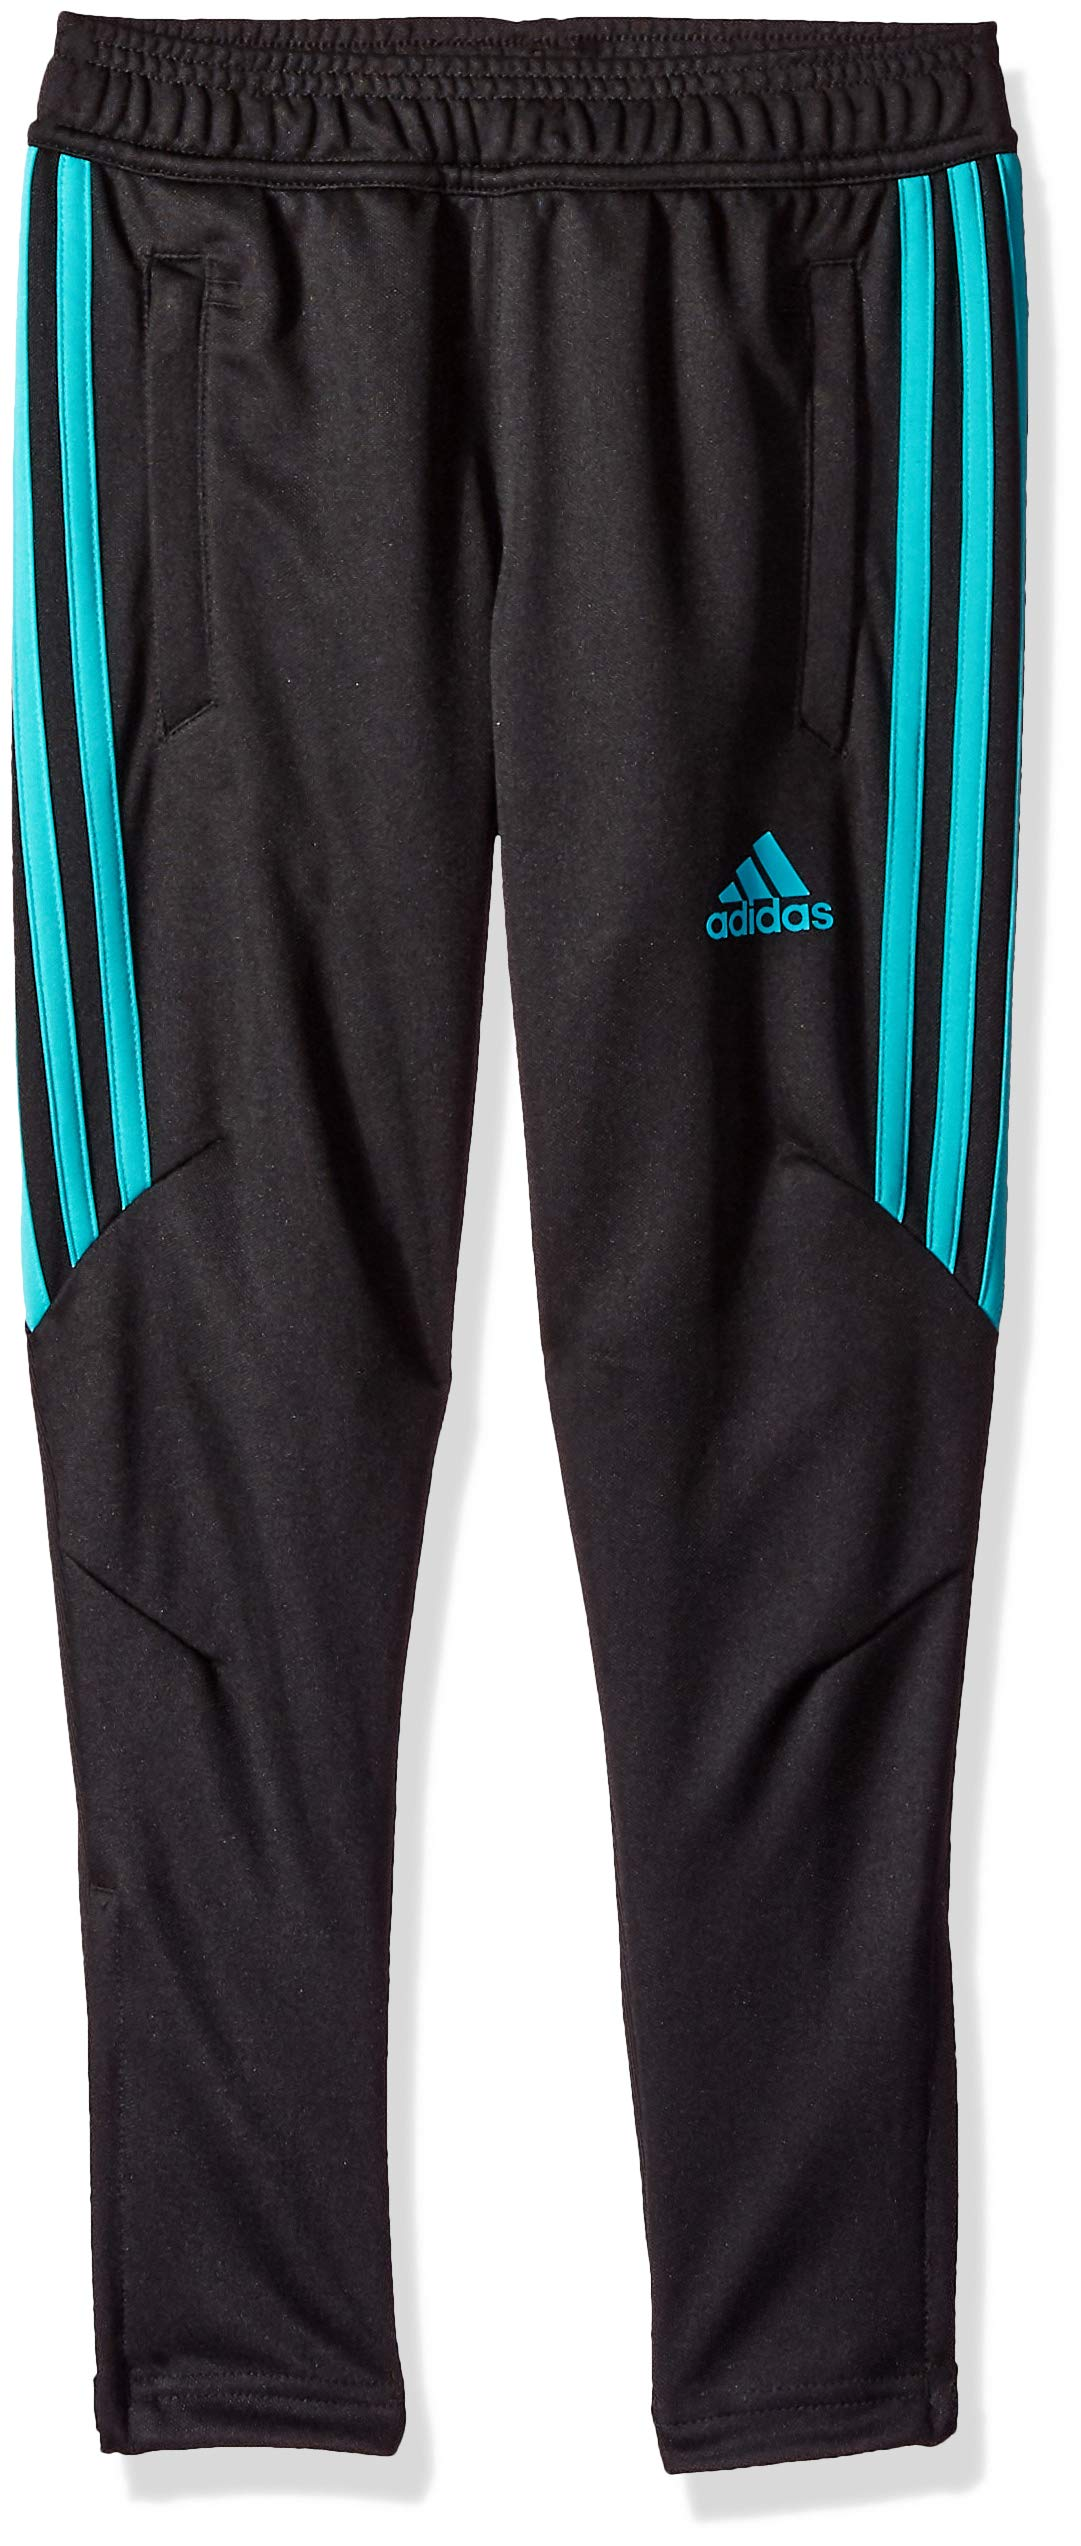 adidas Youth Soccer Tiro 17 Training Pant, Black/Hi-Res Aqua, Large